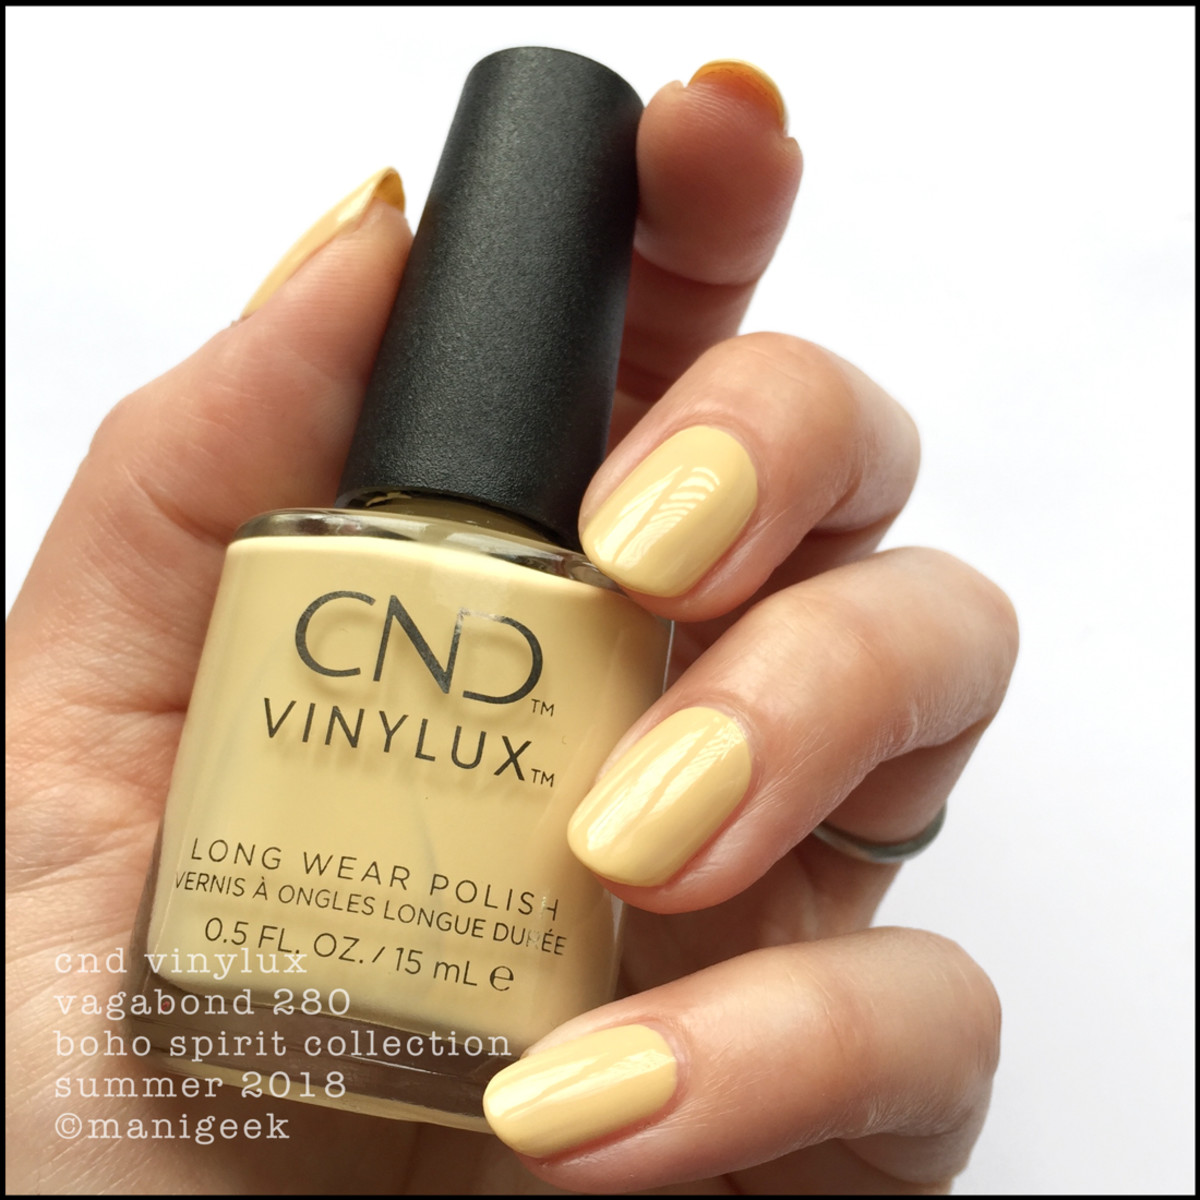 CND Vinylux Vagabond 280 _ CND Boho Spirit Collection Summer 2018